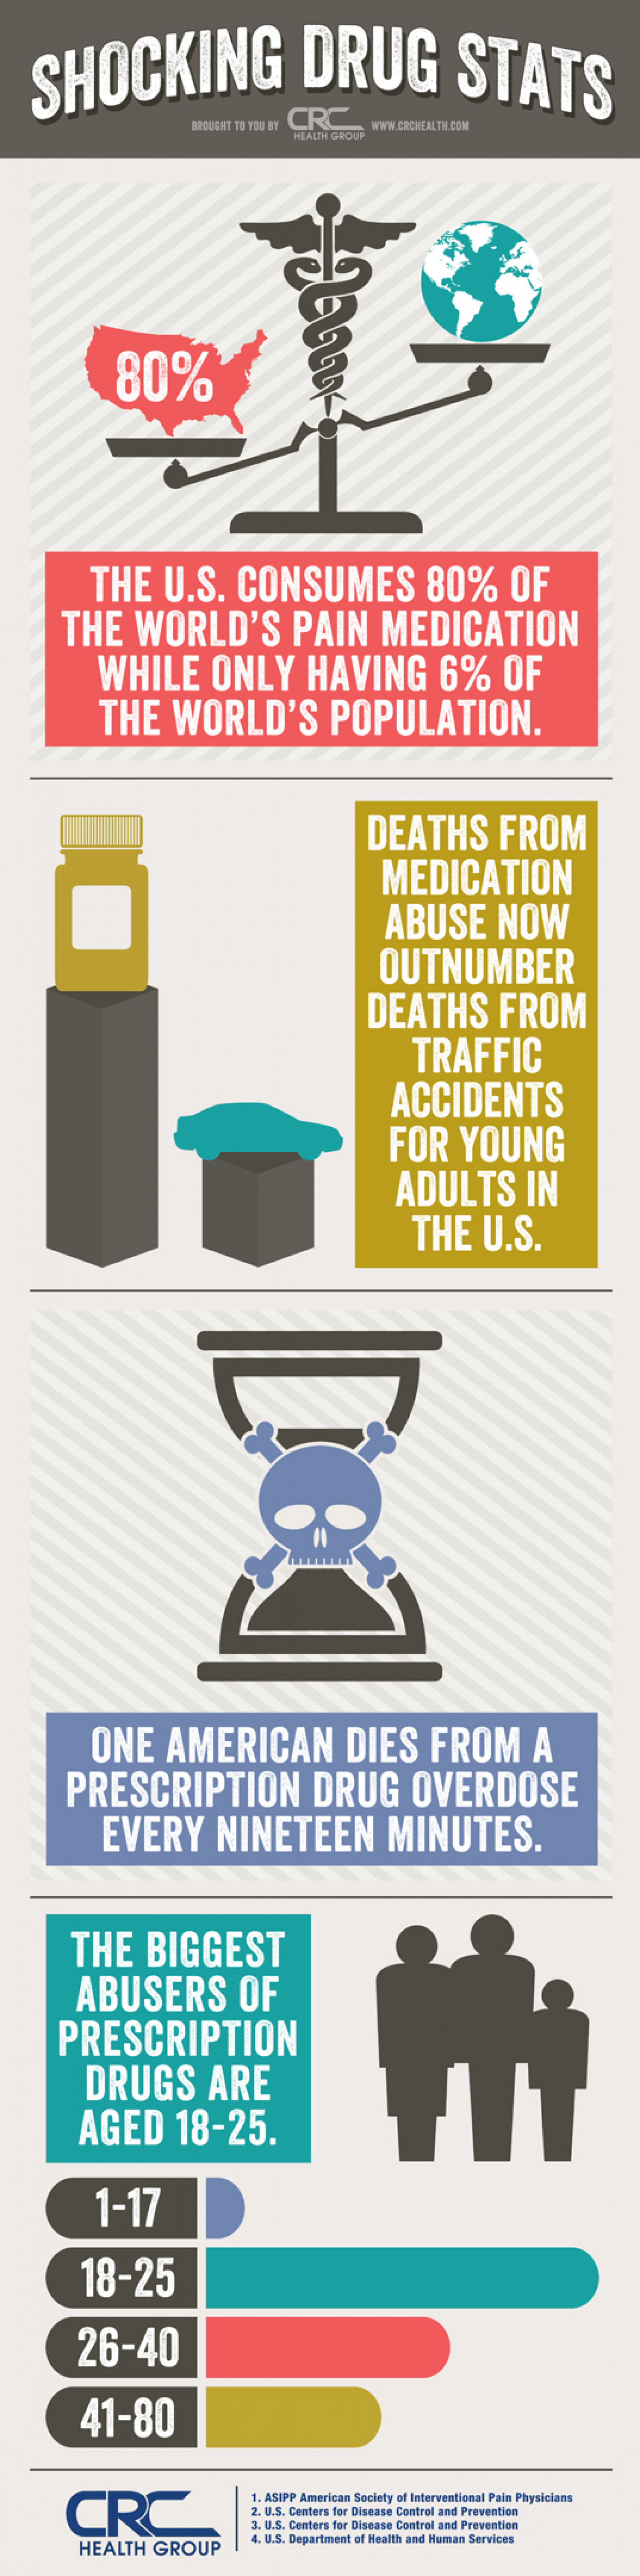 Shocking Drug Stats Infographic